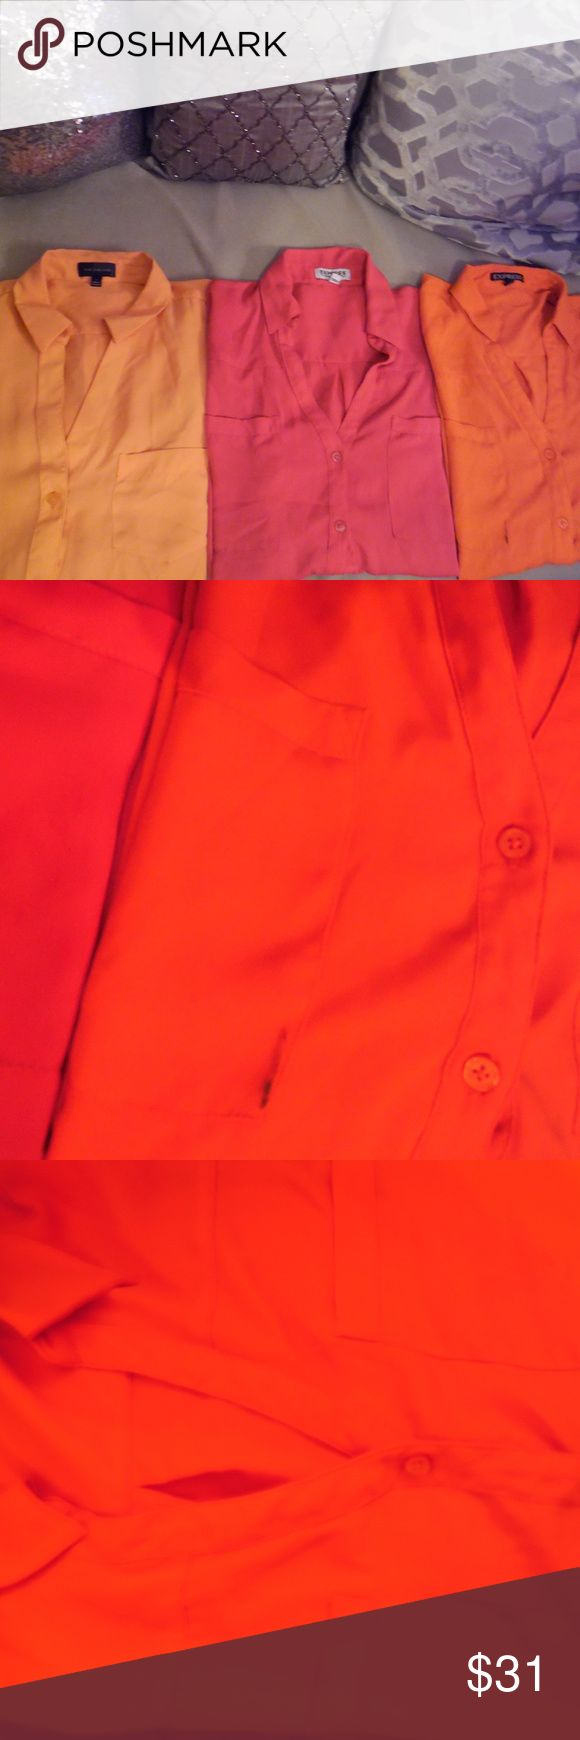 """Workshirt Bundle- EXPRESS & LIMITED - Large Pink & Dark orange- EXPRESS """"The Portofino"""" Peach-The Limited """"The Ashton""""  Note: Dark orange has pen mark on front pocket- All could use a simple trip to the dry cleaner. Otherwise good condition. Express Tops Button Down Shirts"""